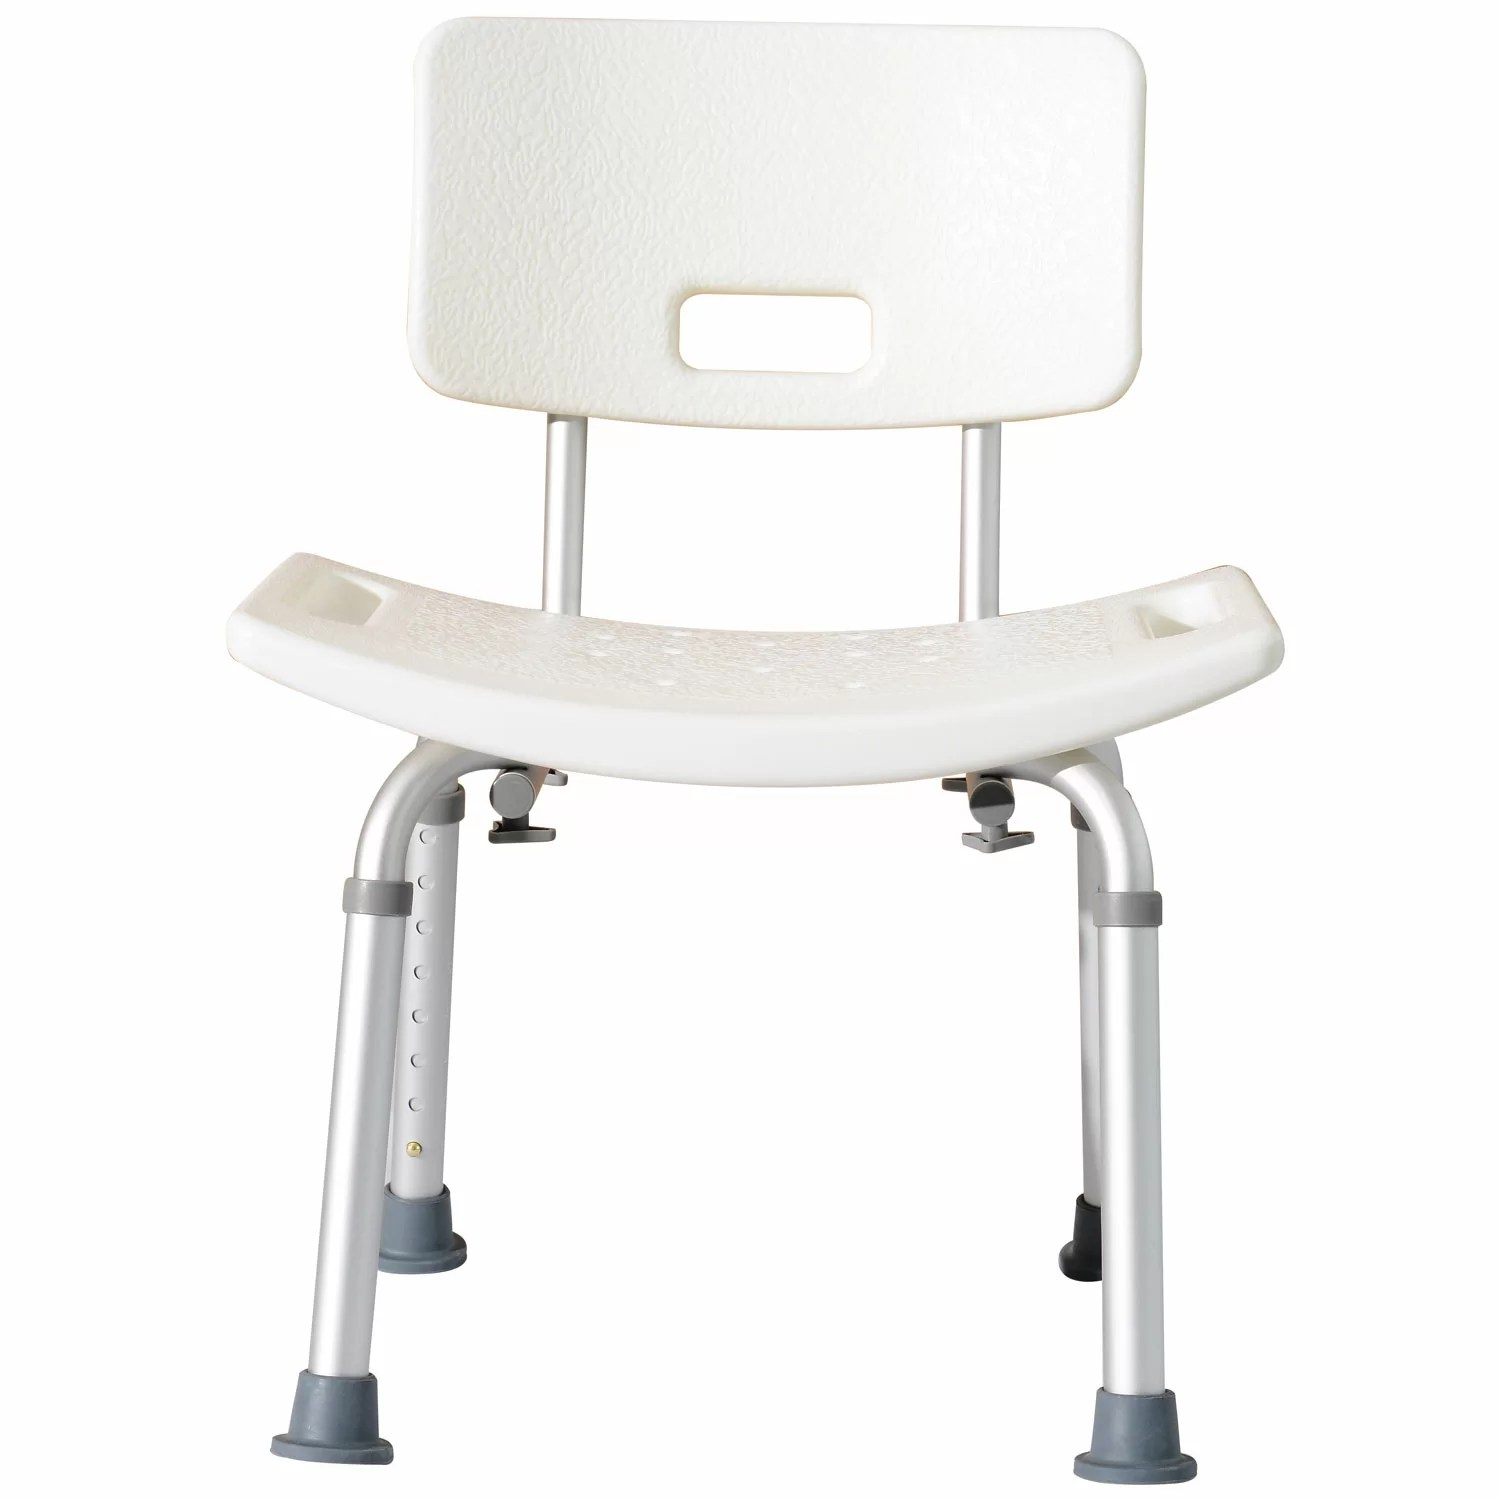 Chair For Bathtub Homcom Medical Bath Bench Shower Chair And Reviews Wayfair